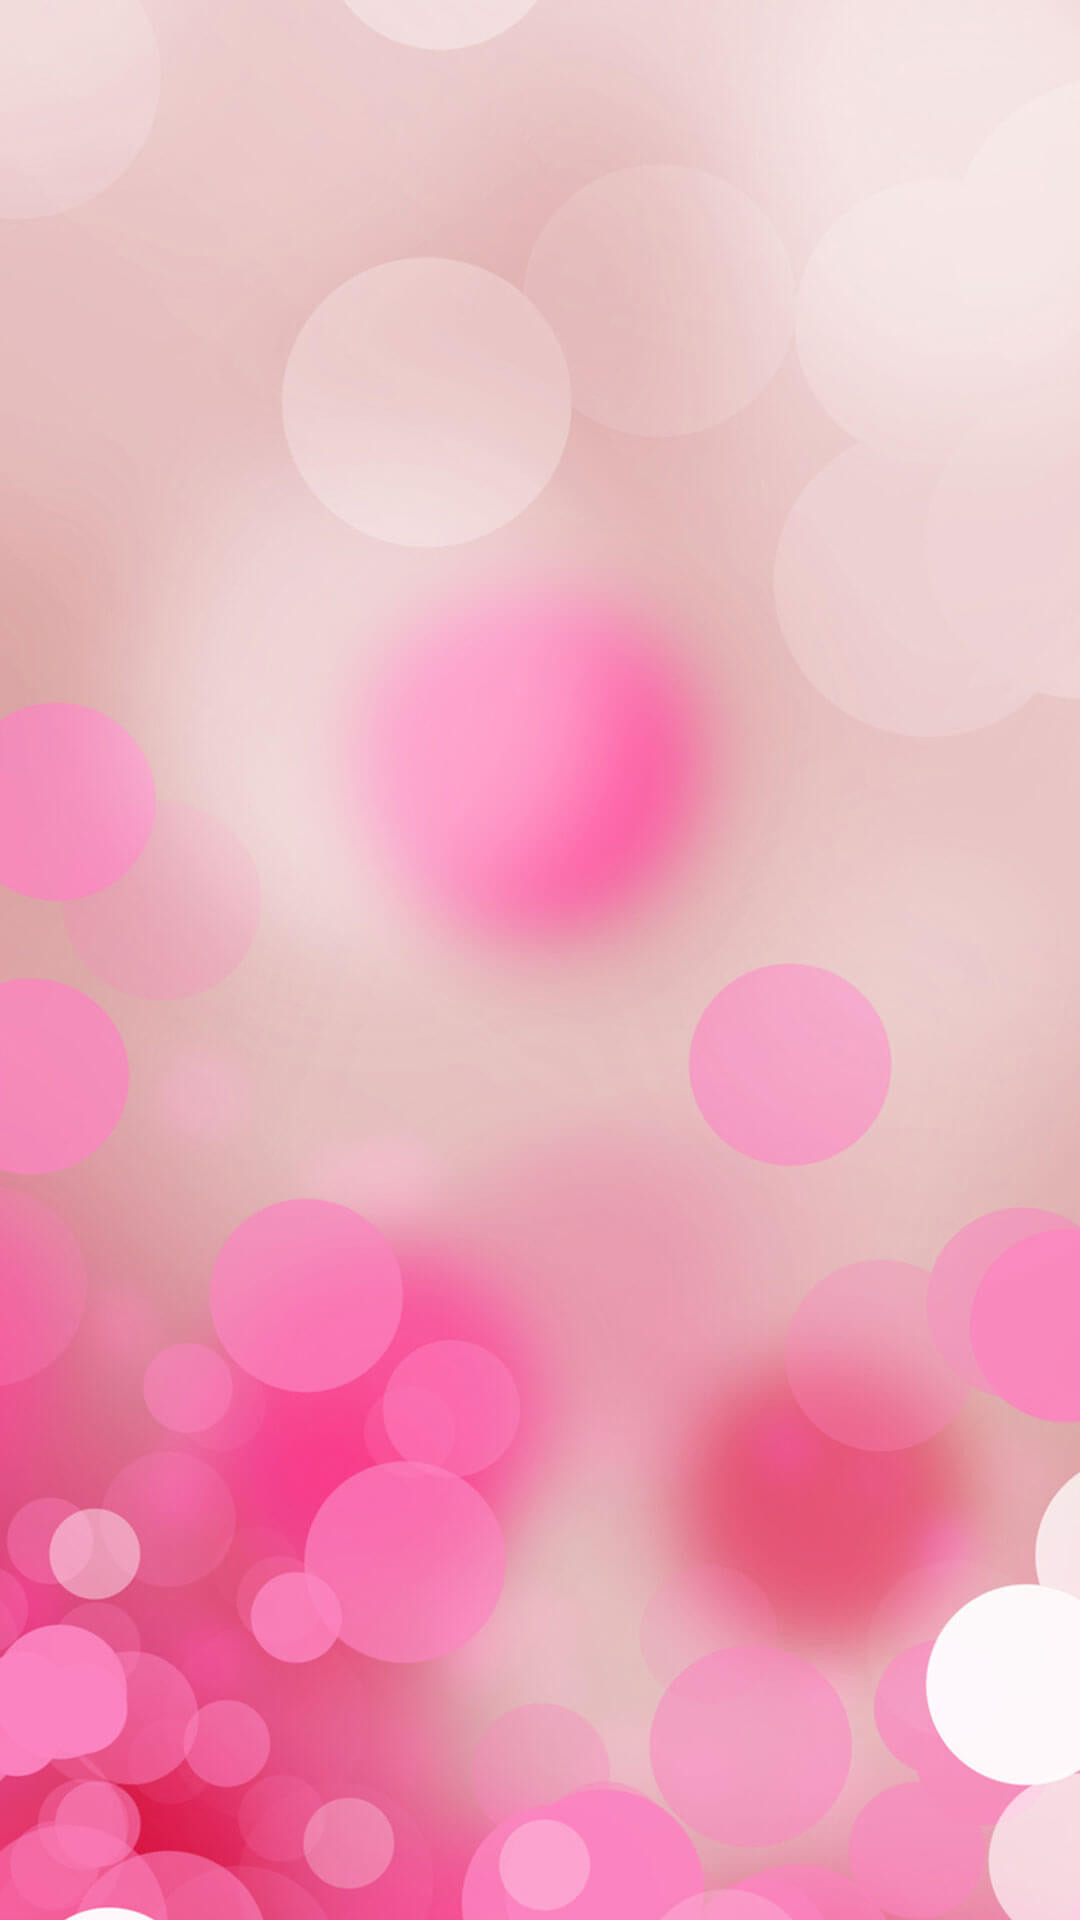 1440x2560 Girl Wallpapers Backgrounds Girly Themes On The App Store Cool IPhone For Girls